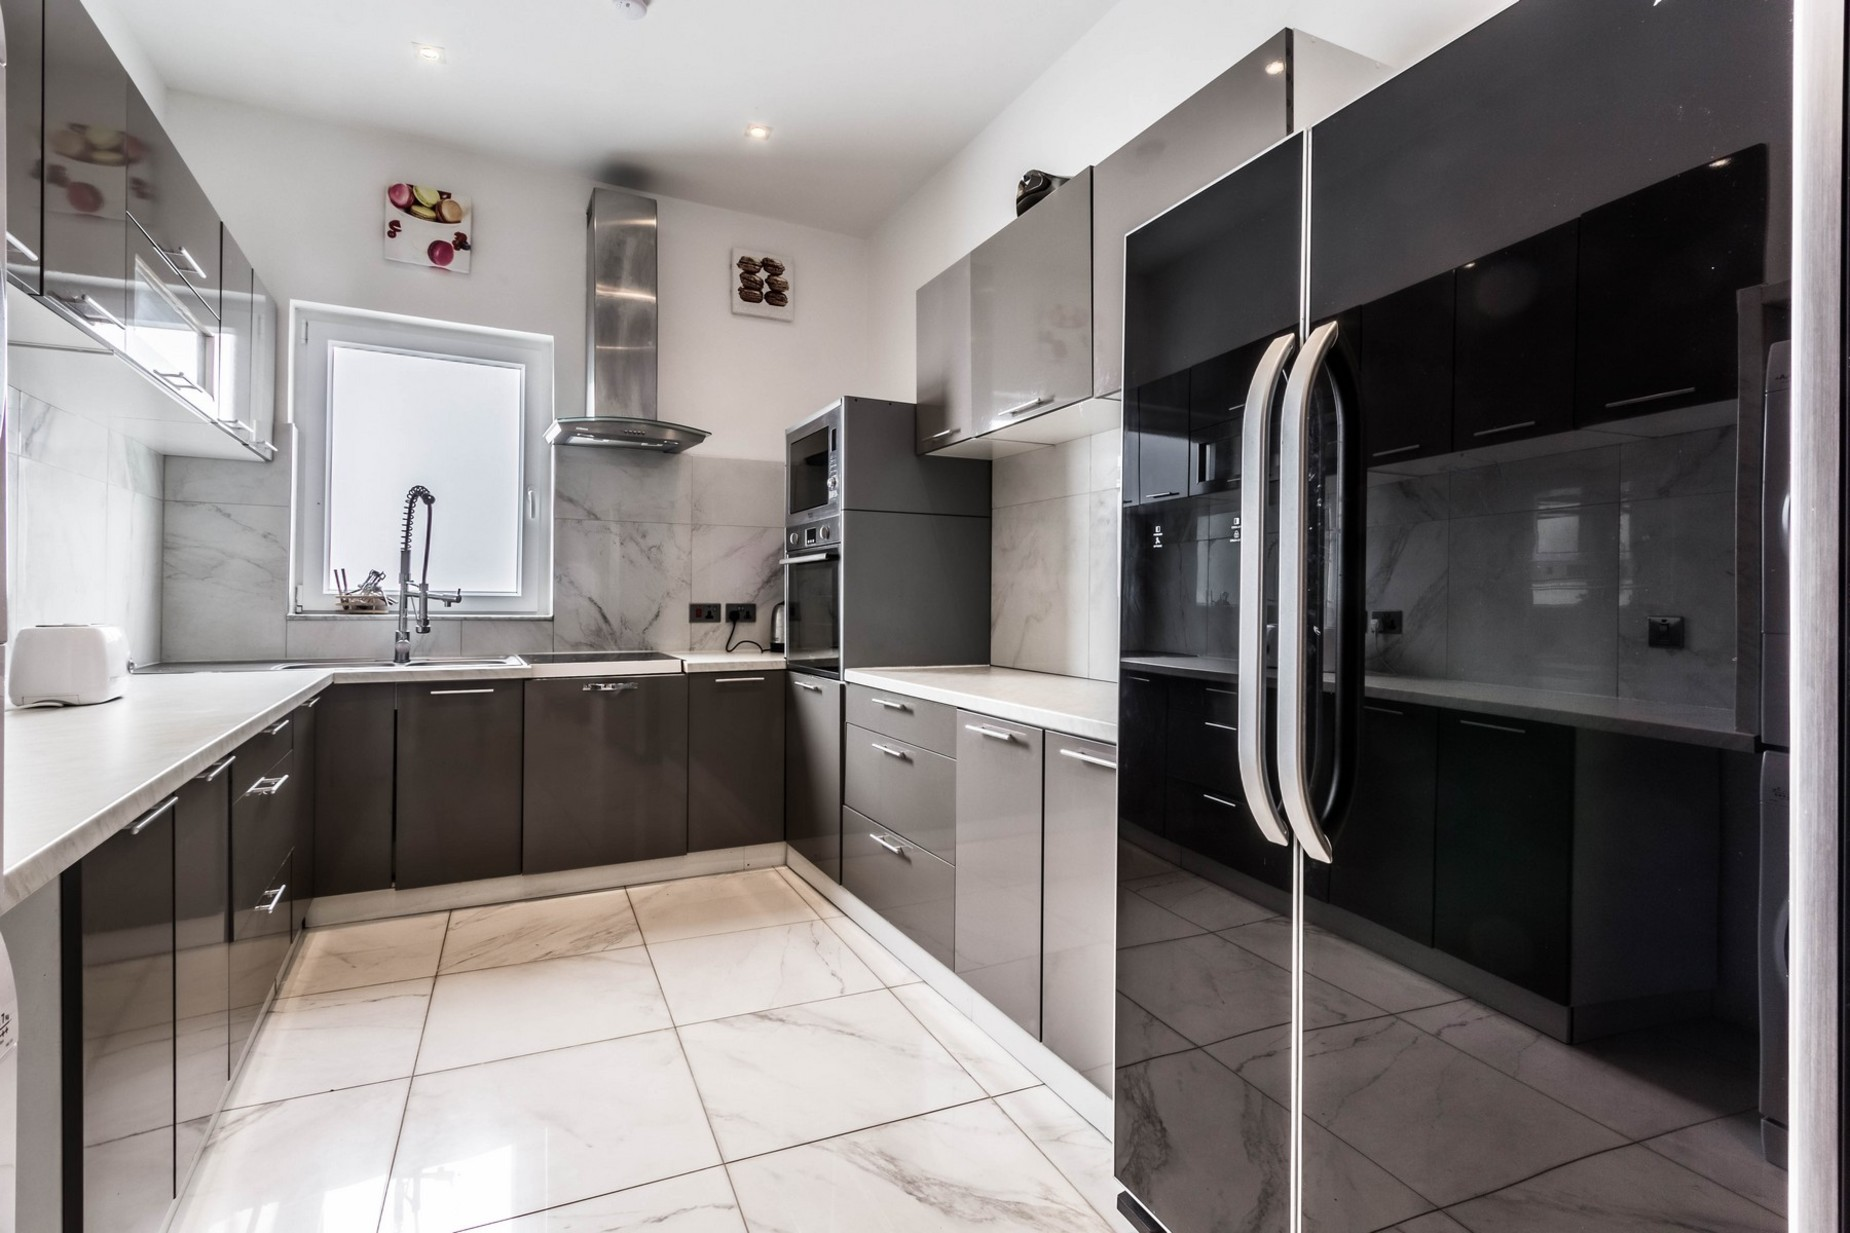 3 bed Penthouse For Sale in Sliema, Sliema - thumb 15